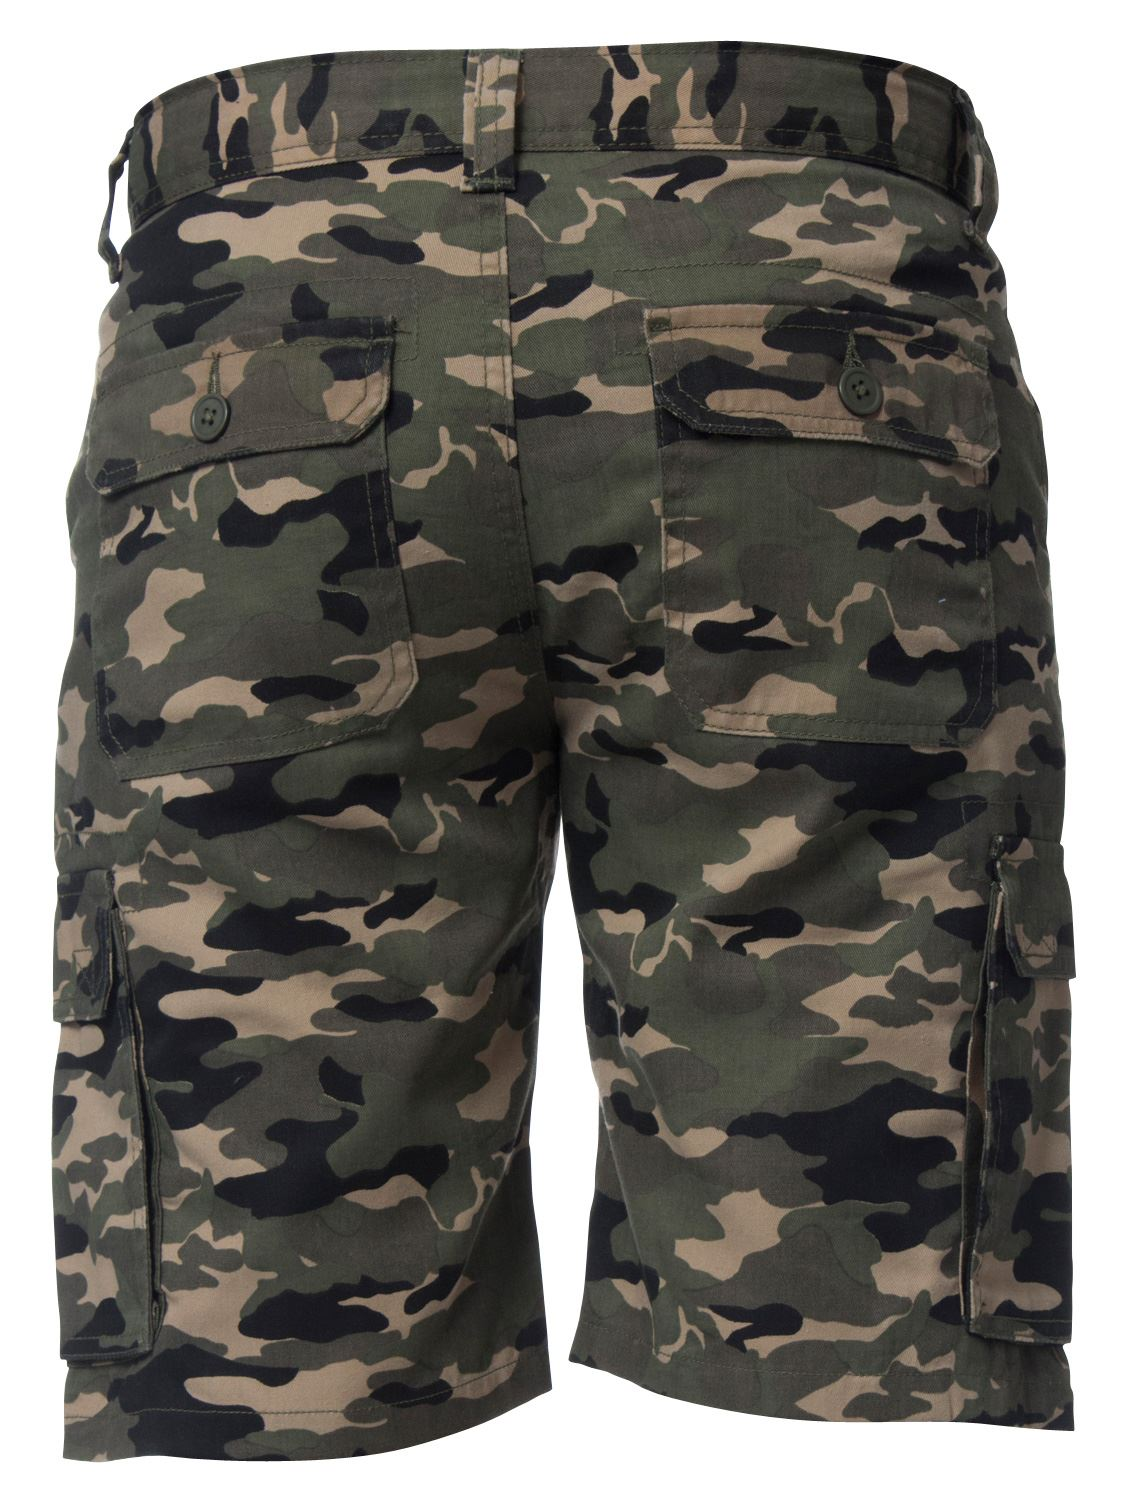 Kruze-Jeans-Mens-Army-Combat-Shorts-Camouflage-Cargo-Casual-Camo-Work-Half-Pants thumbnail 13